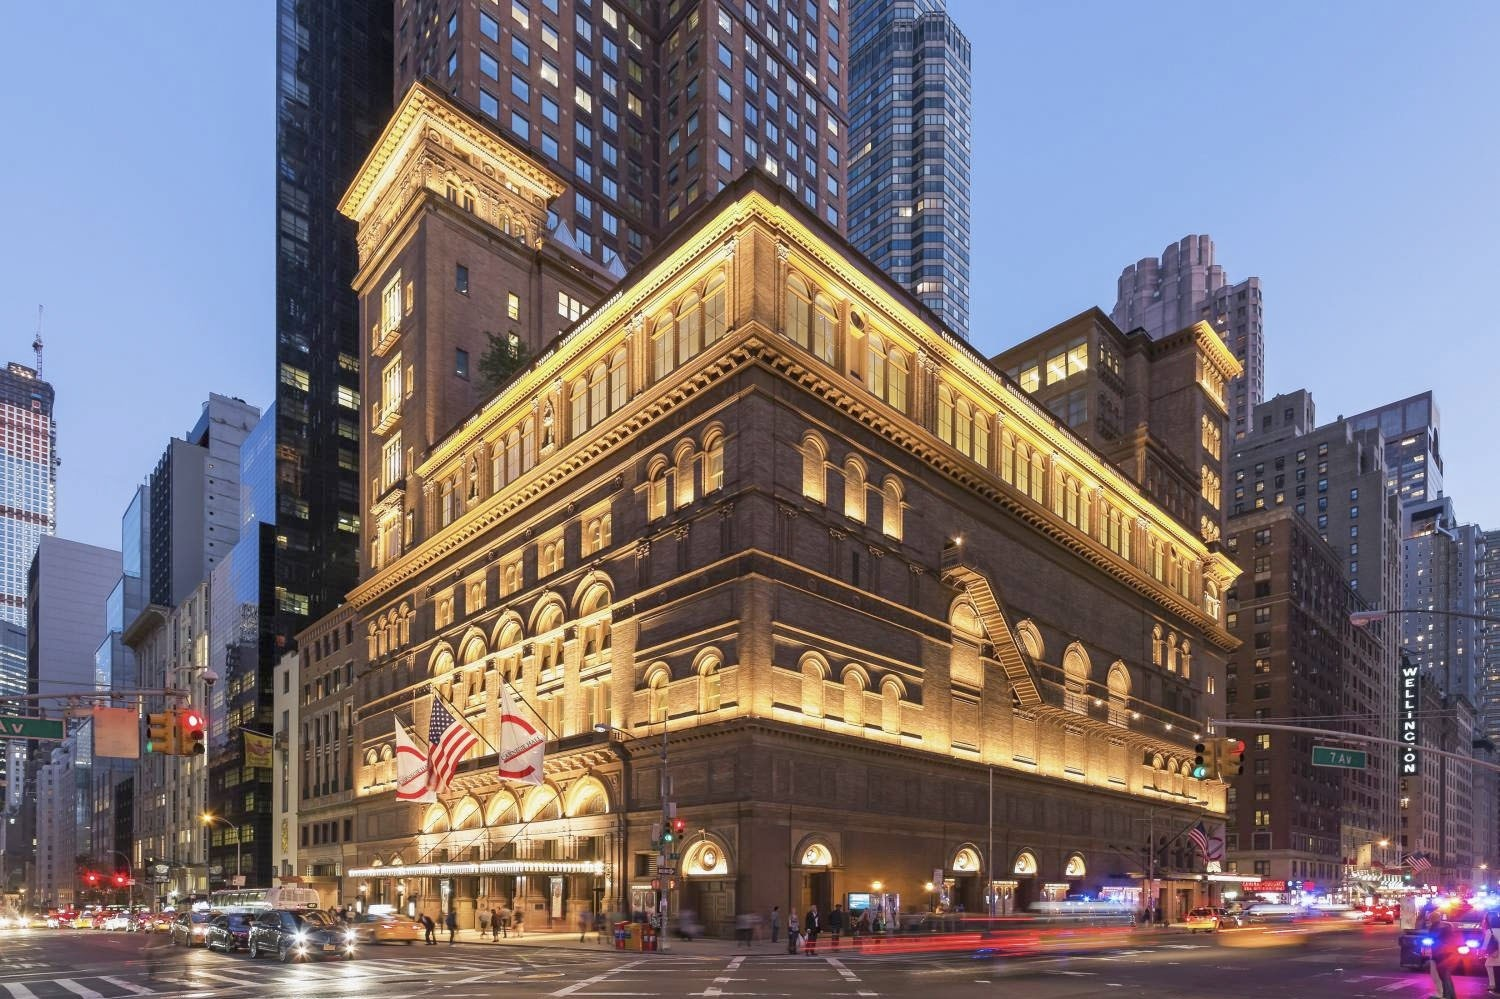 The concert will take place at the Carnegie Hall in New York.